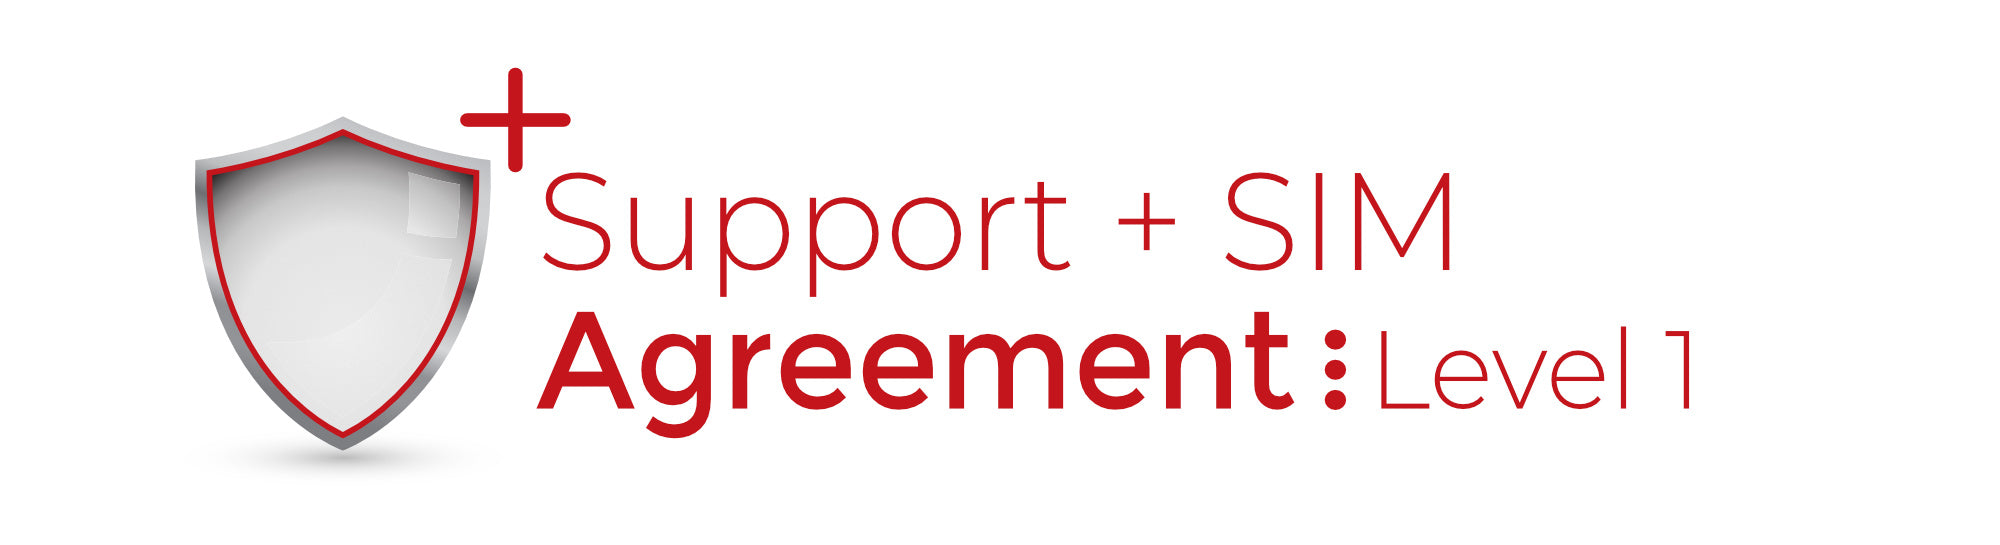 Support Level 1 + SIM Agreement - (12 Programming changes per year + £12 SIM) - Commtel Shop